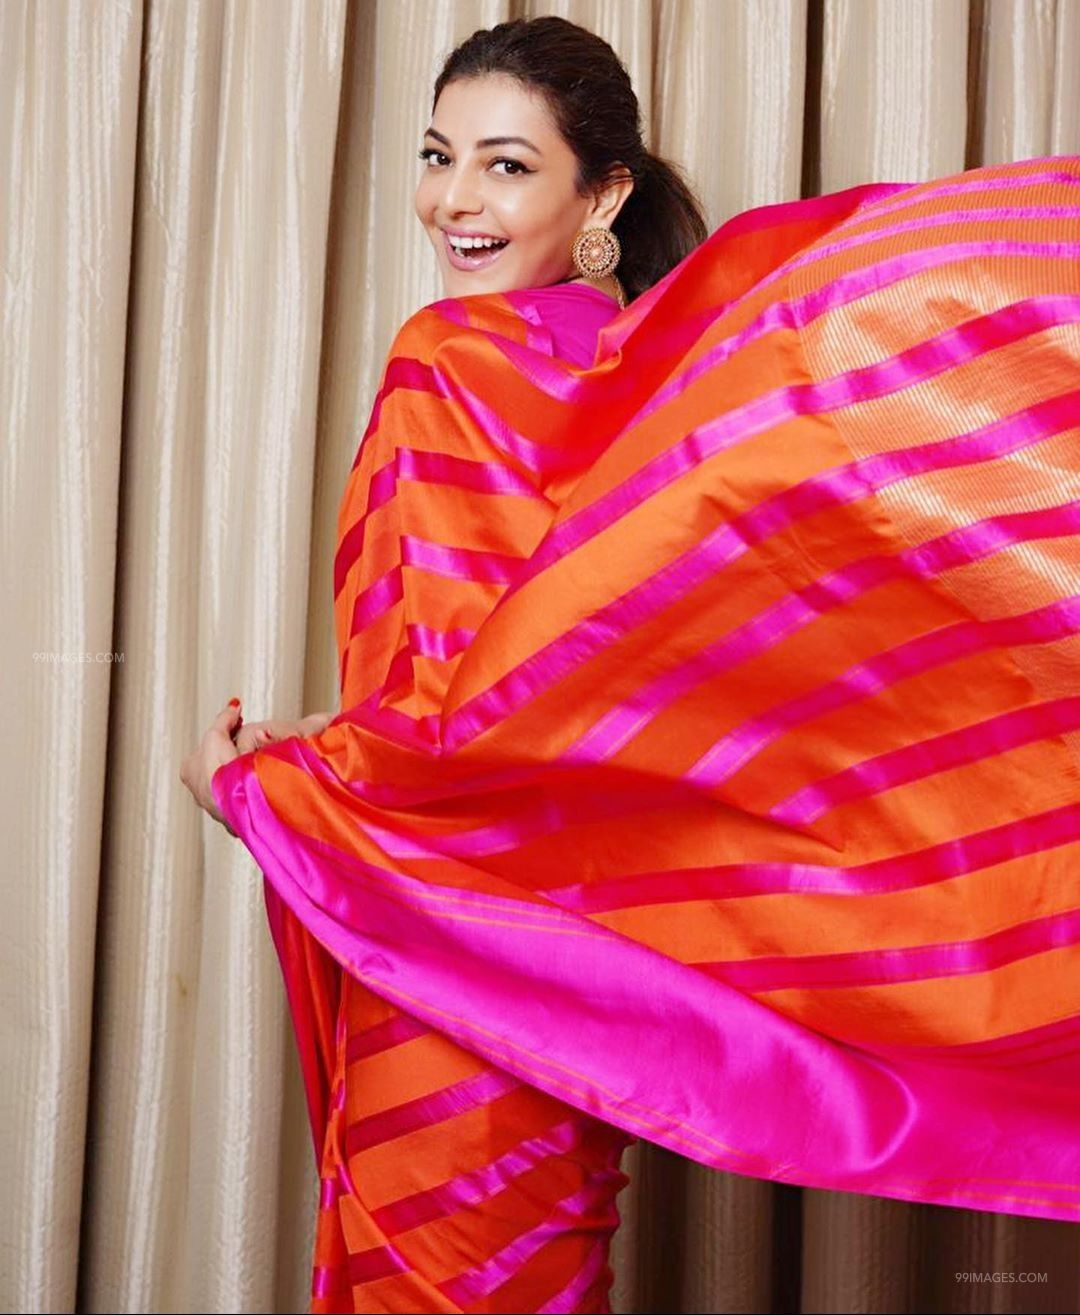 Kajal Agarwal Latest Hot HD Photoshoot Photos / Wallpapers in Saree, WhatsApp DP (1080p) (74884) - Kajal Agarwal